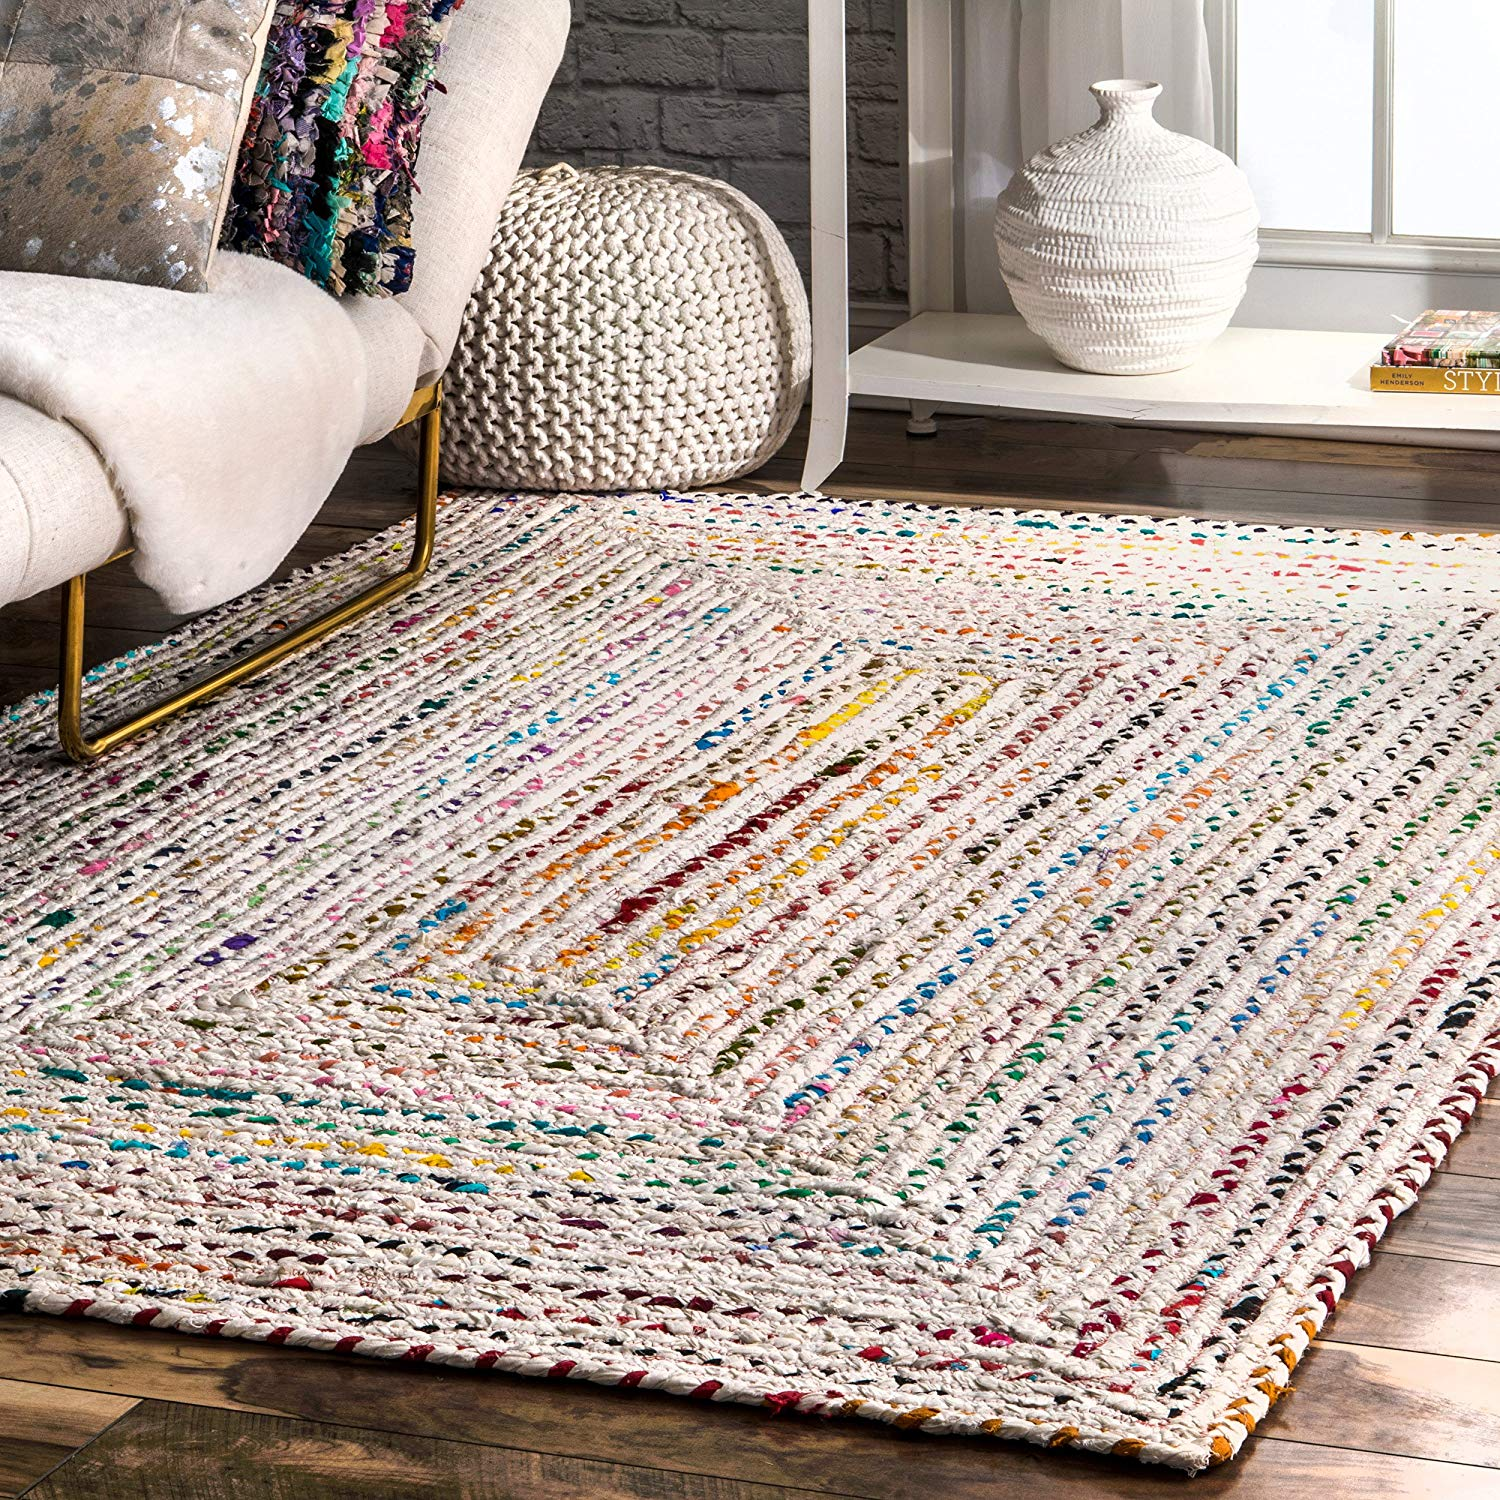 Hand Braided Ivory Multi Color Soft Area Rugs Modern Rugs And Decor